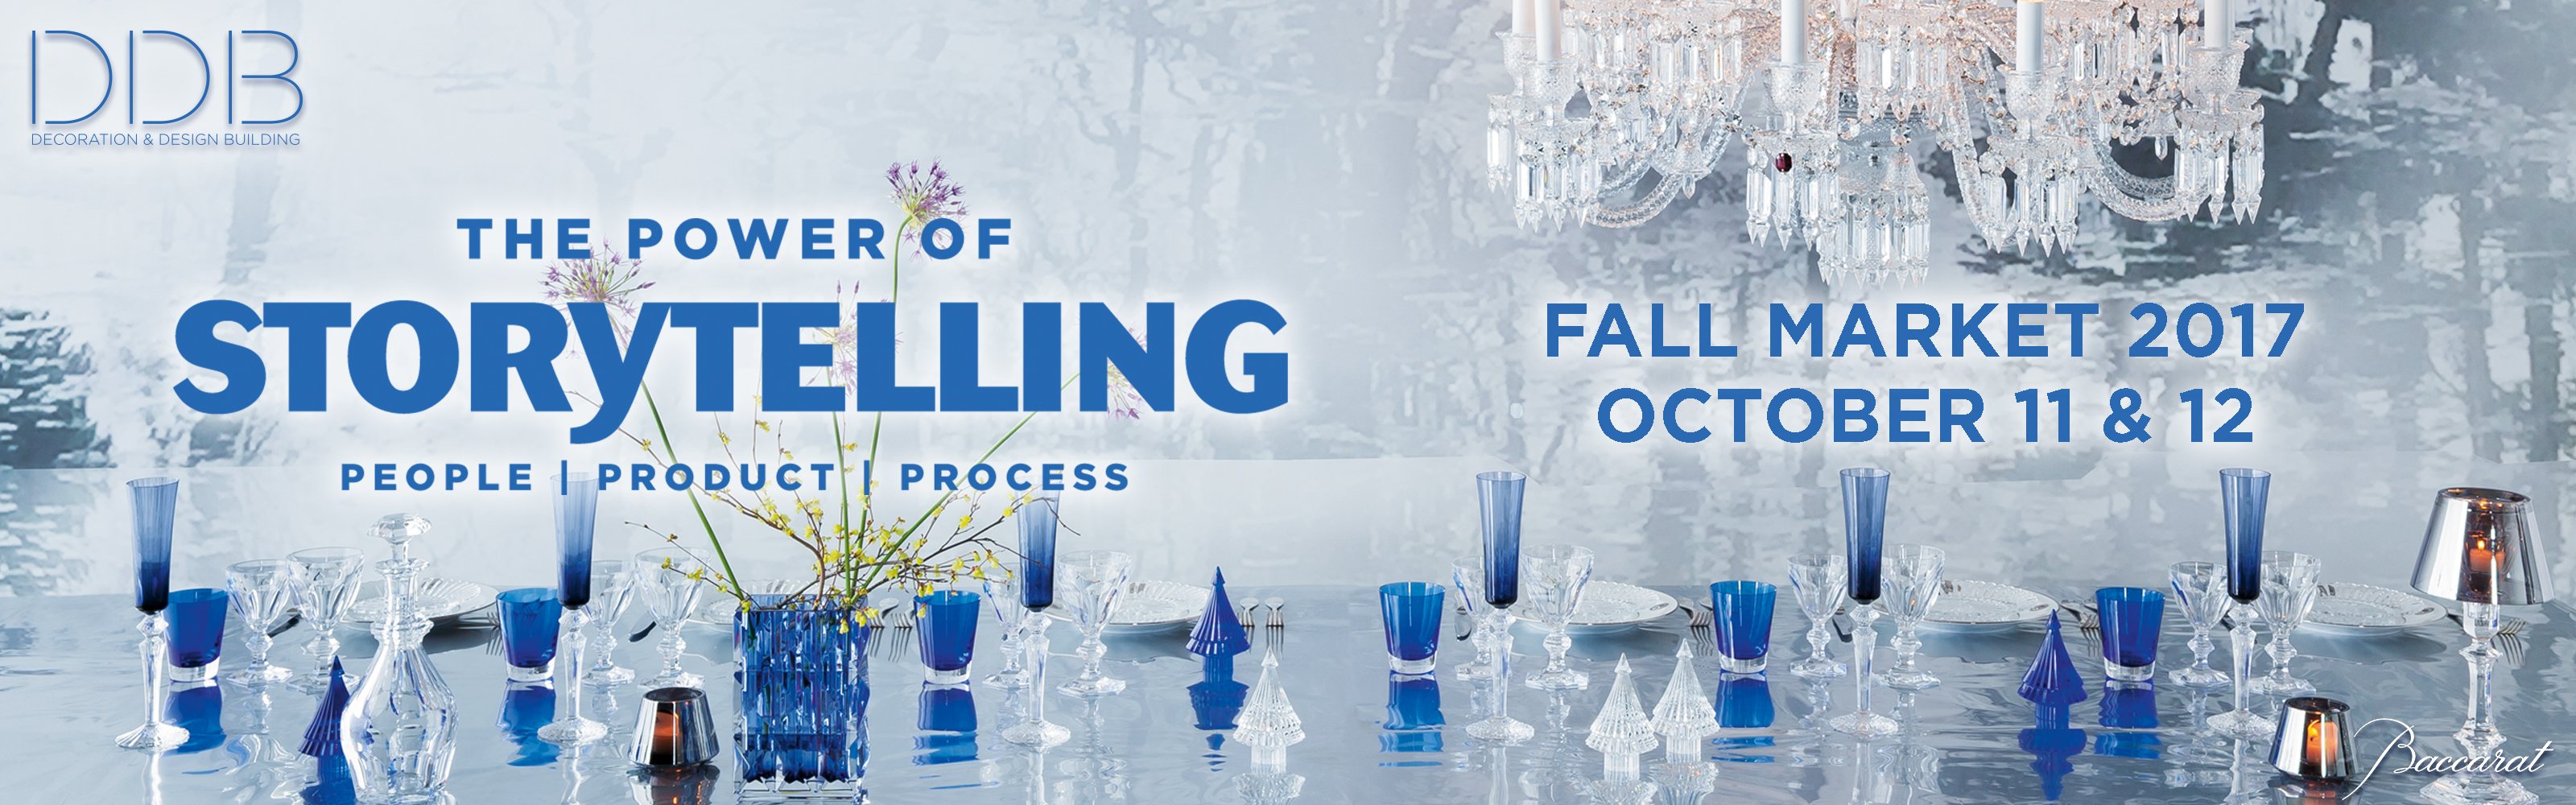 Decoration & Design Building: Fall Market 2017 Is Here Again fall market Decoration & Design Building: Fall Market 2017 Is Here Again website cover image1